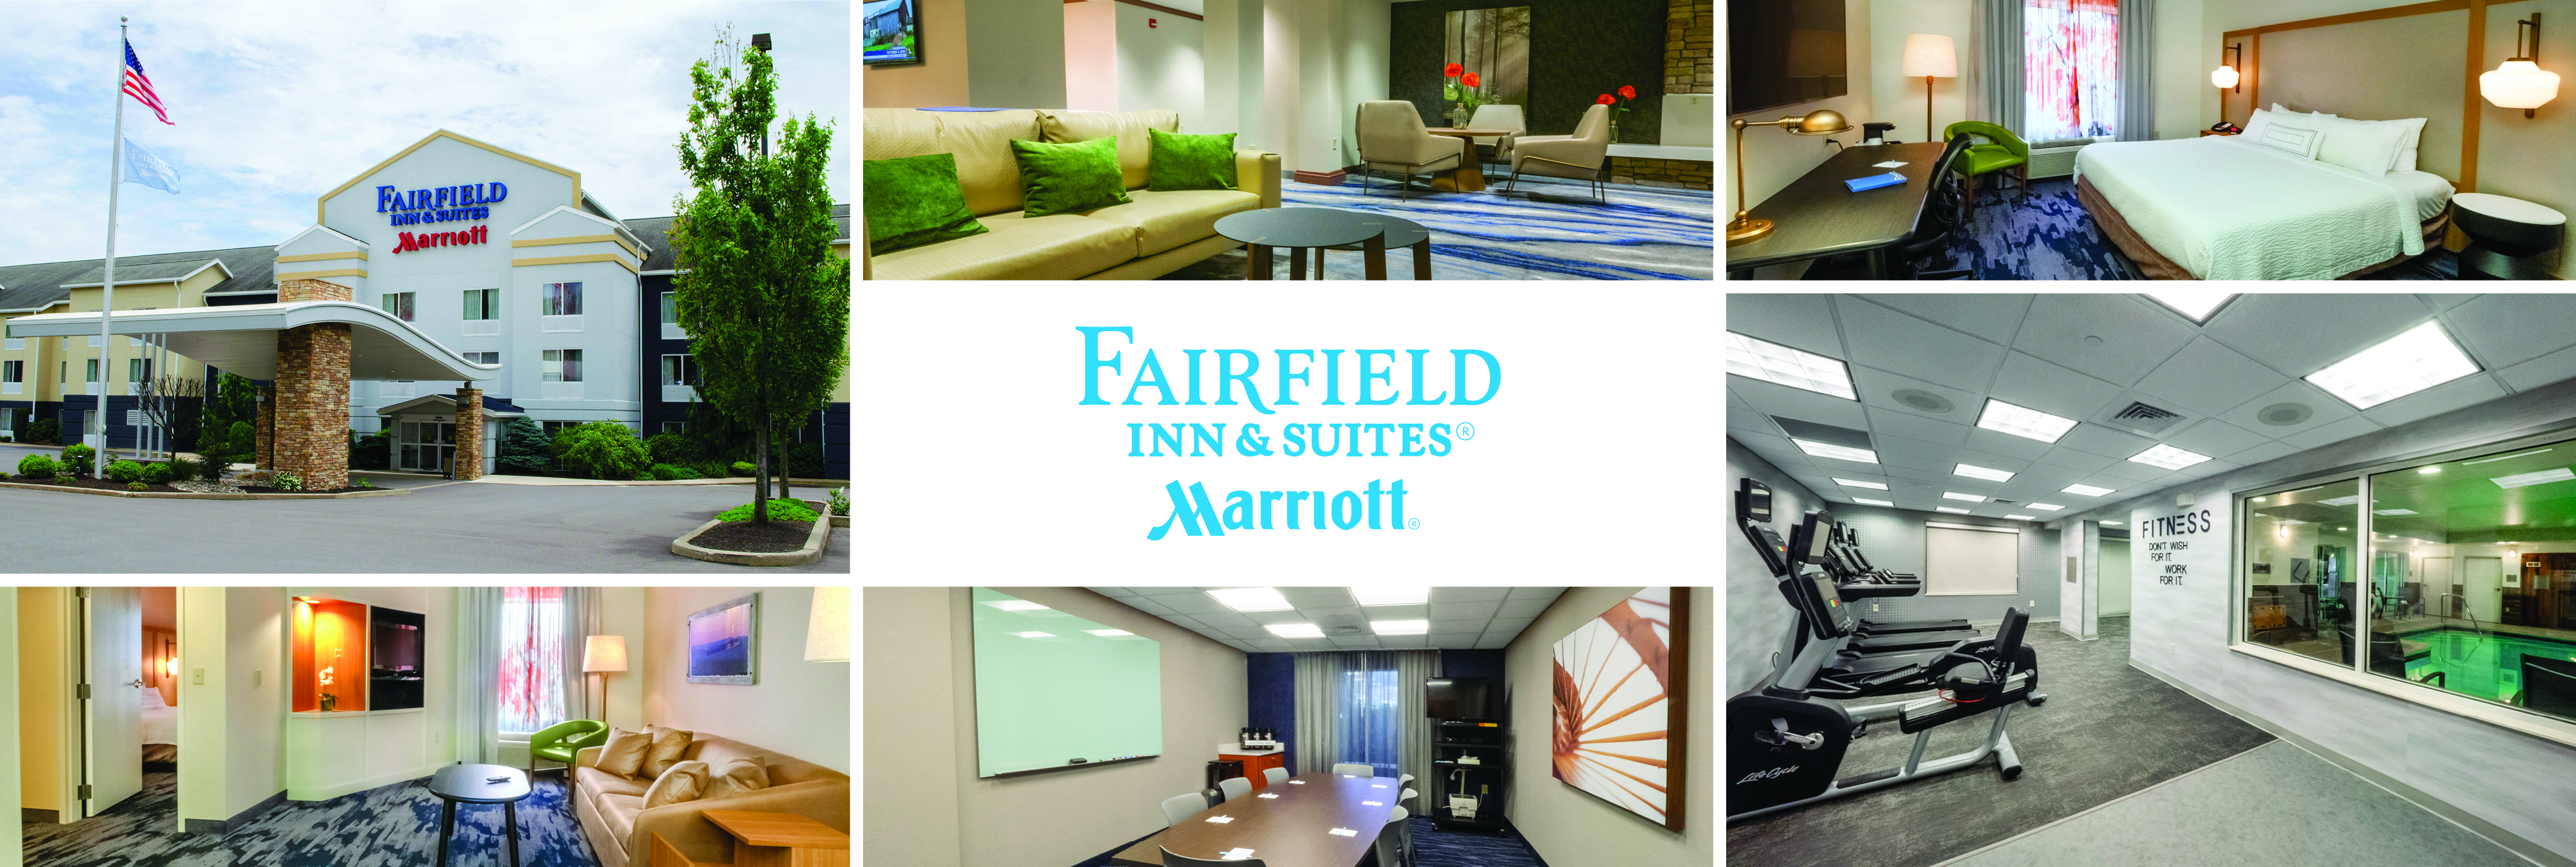 Fairfield Inn and Suites in Hazleton, PA